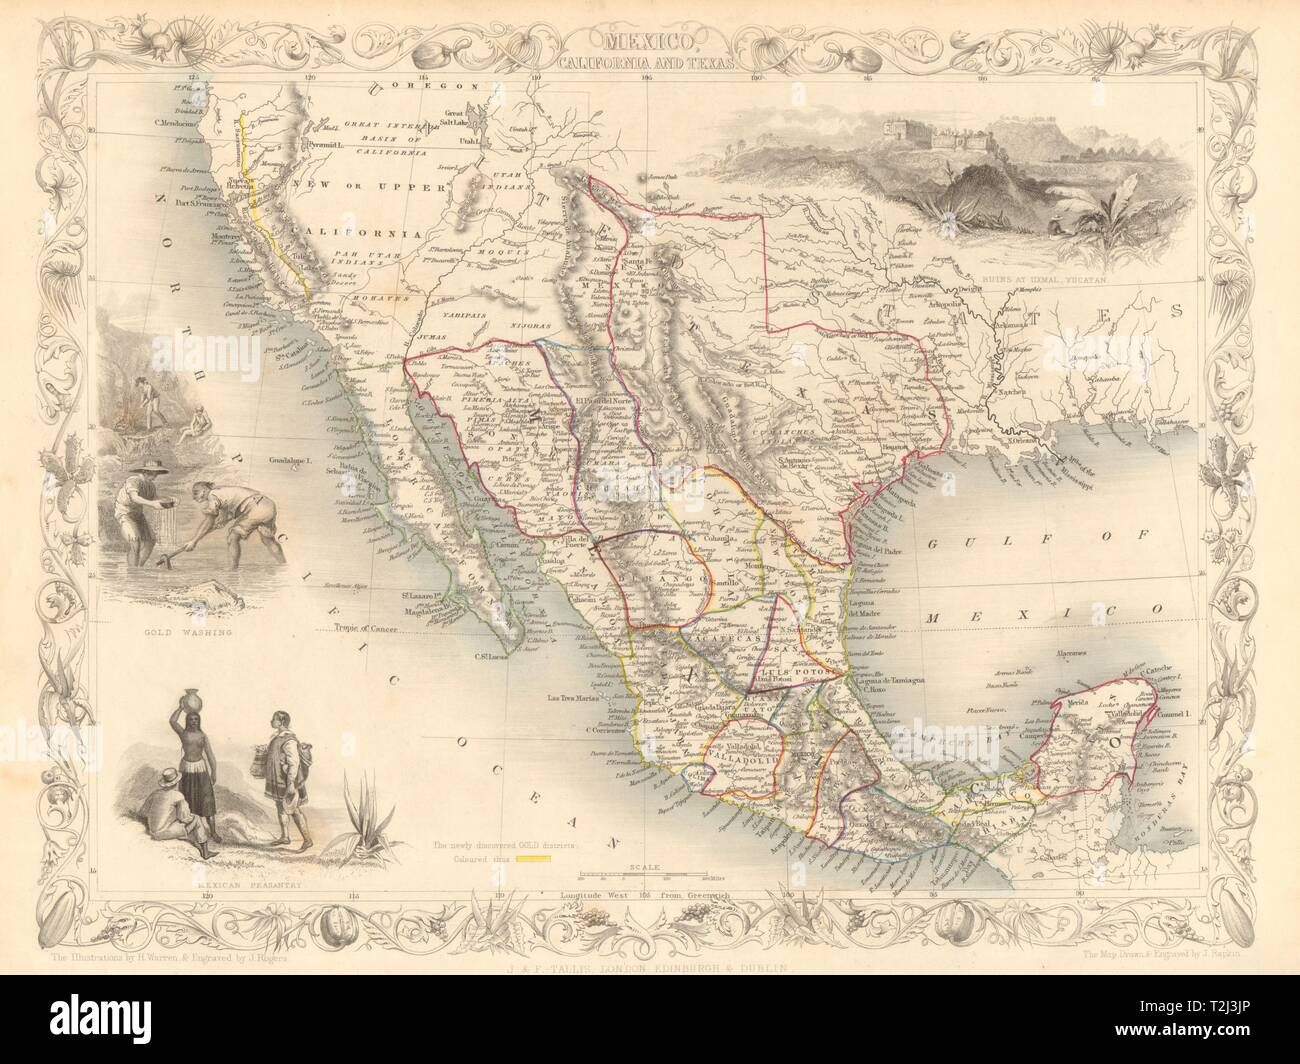 MEXICO CALIFORNIA TEXAS. Gold rush district. TX Republic ... on map of livermore california, map of buffalo california, map of central california, map of salinas california, map of lomita california, map of bakersfield california, map of pomona california, map of san juan bautista california, map of mountain house california, map of mt. view california, map of ventura california, map of white mountains california, map of isleton california, map of colfax california, map of wilton california, map of victorville california, map of pollock pines california, map of china lake california, map of san mateo california, map of oakland california,